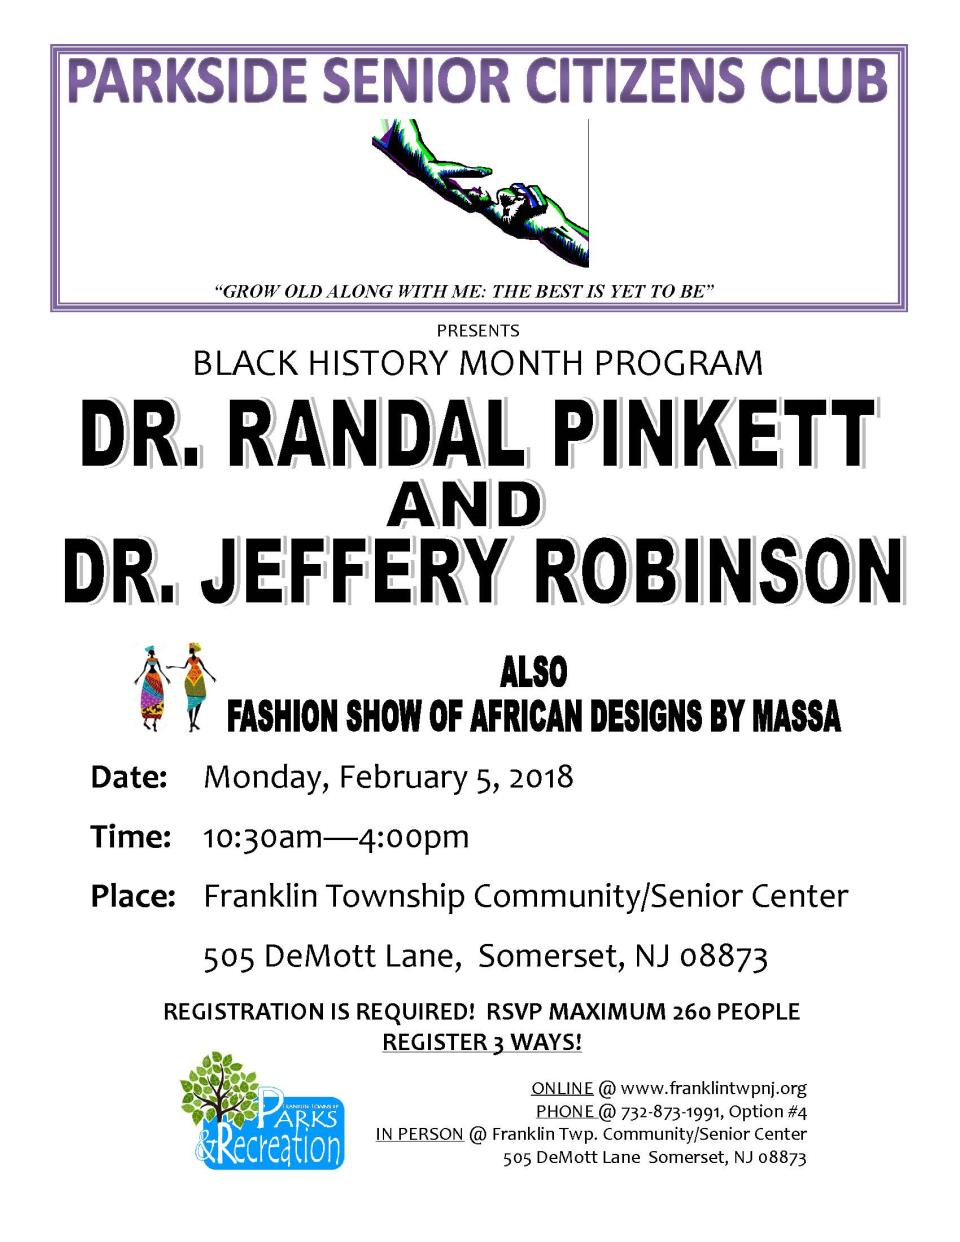 Dr. Pinkett & Dr. Robinson event